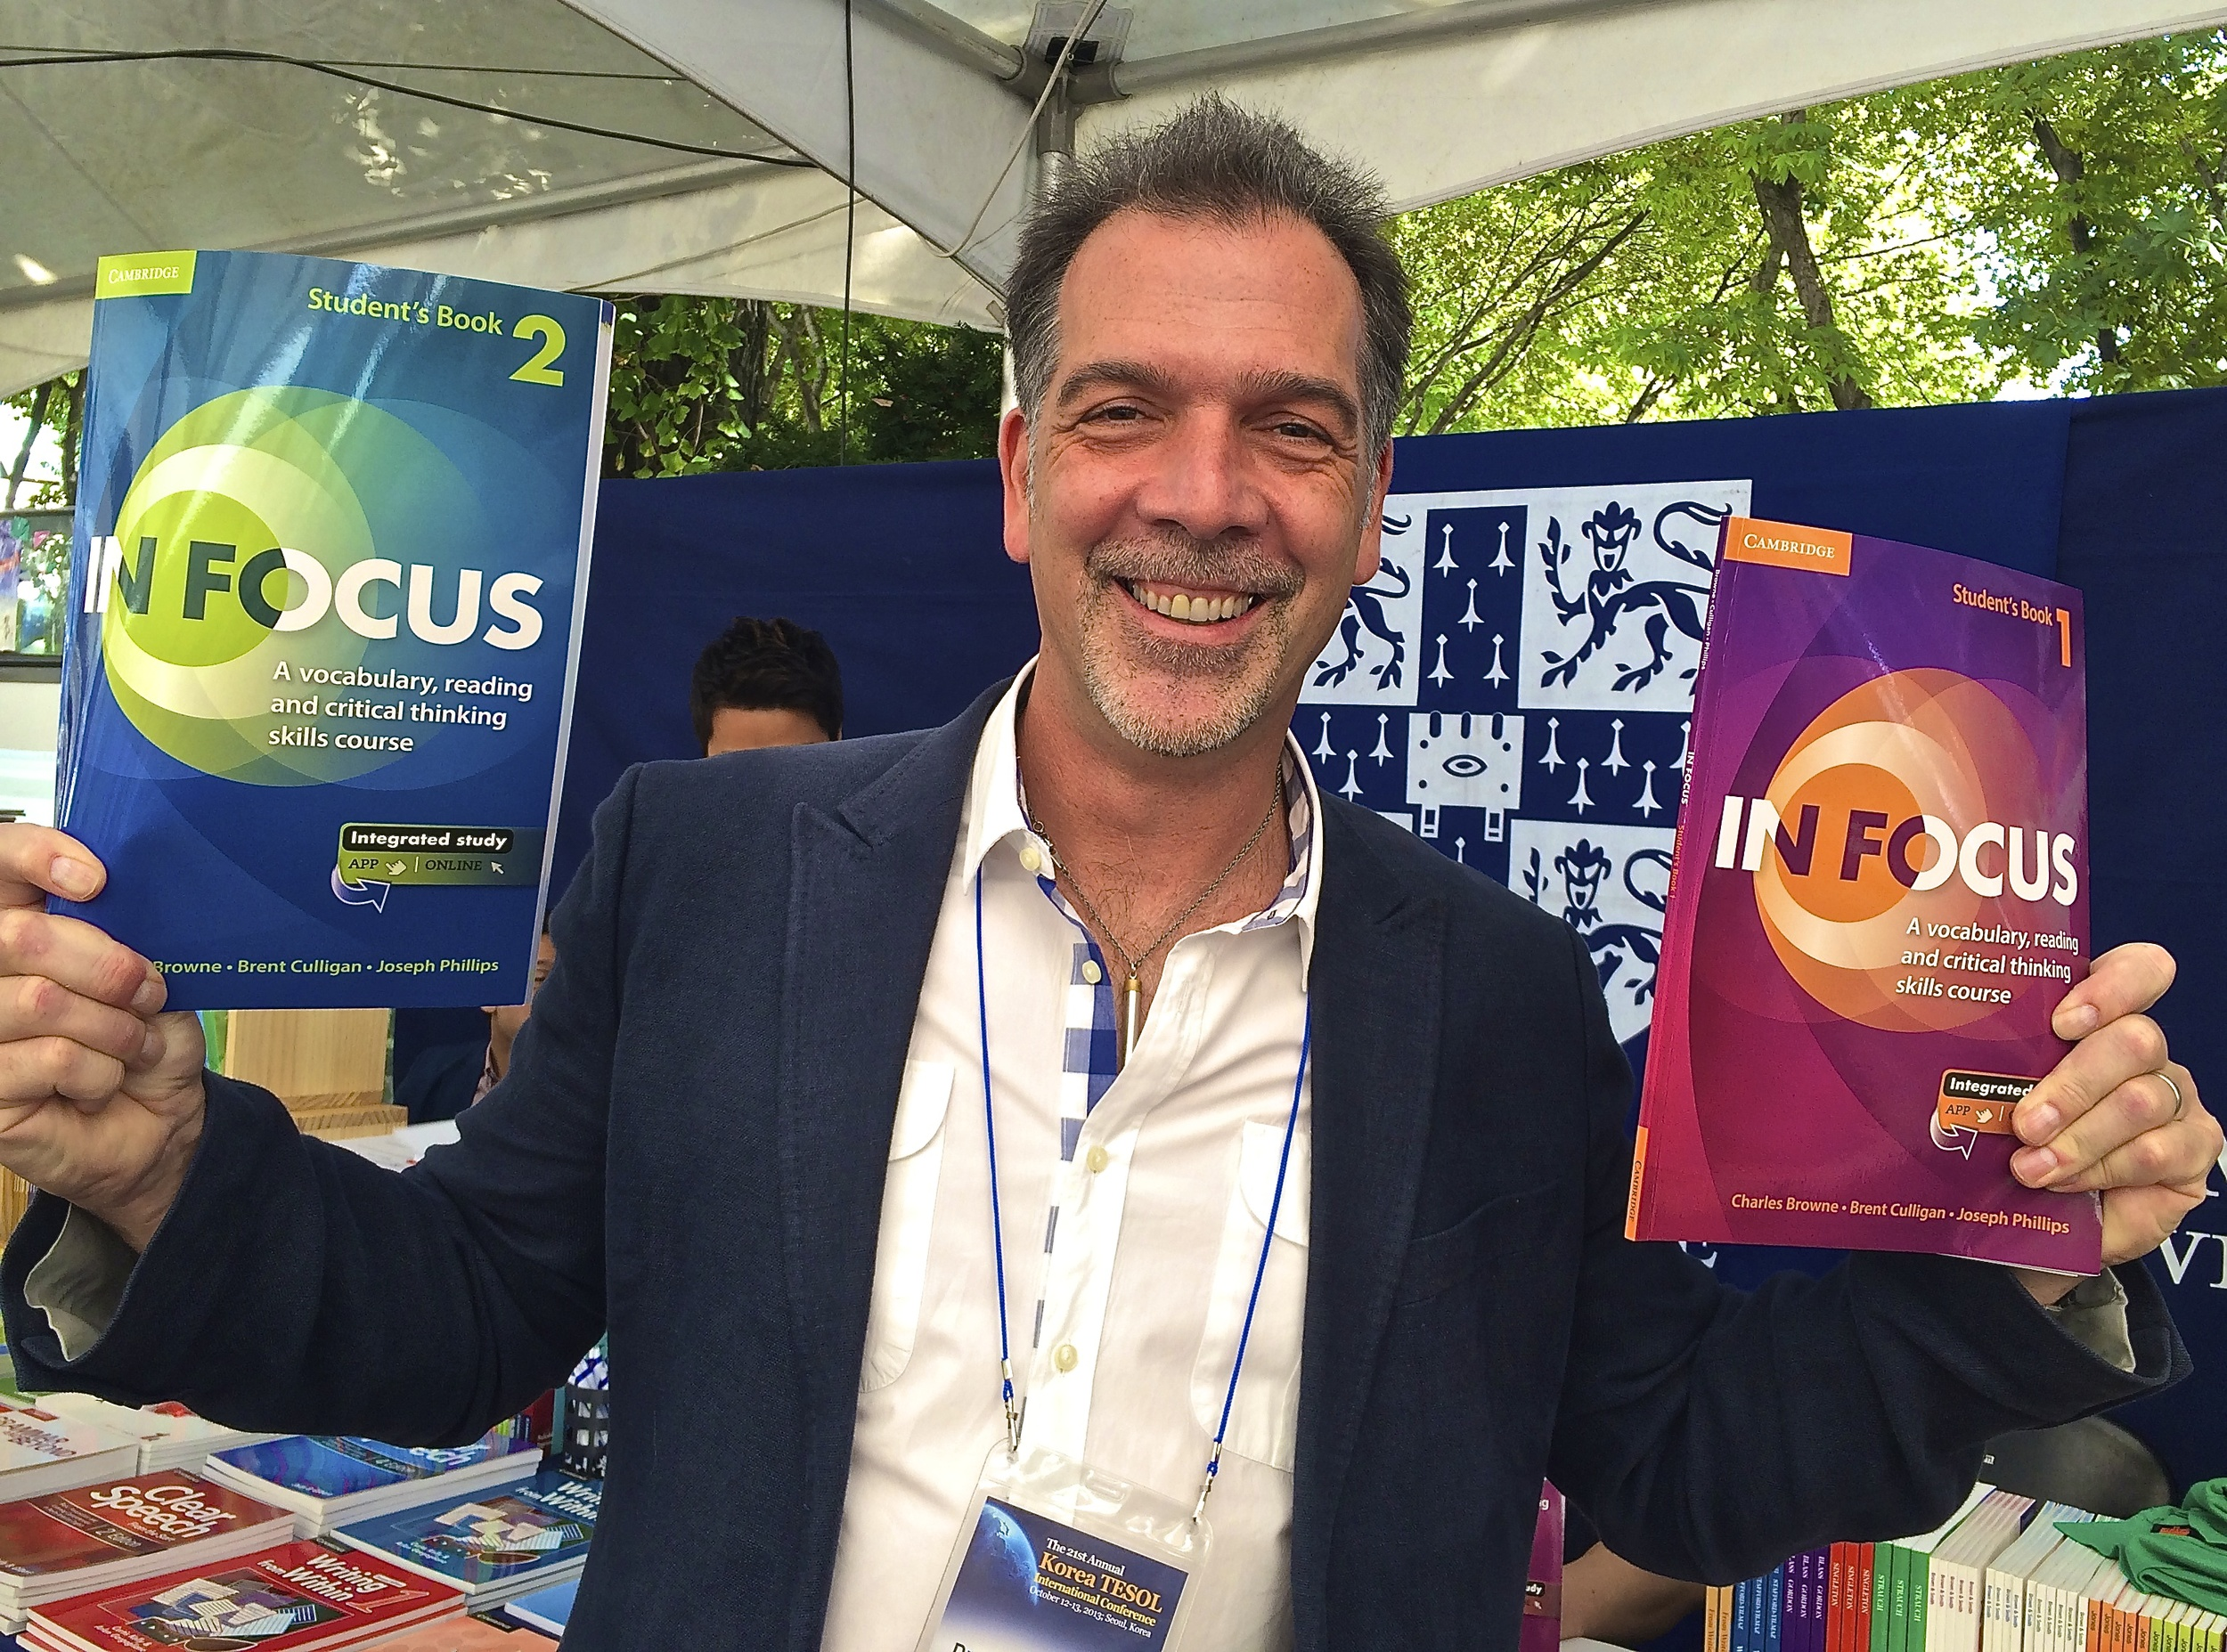 Dr. Charles Browne picking up the first copies of In Focus at the Cambridge booth at the KoTESOL Conference.